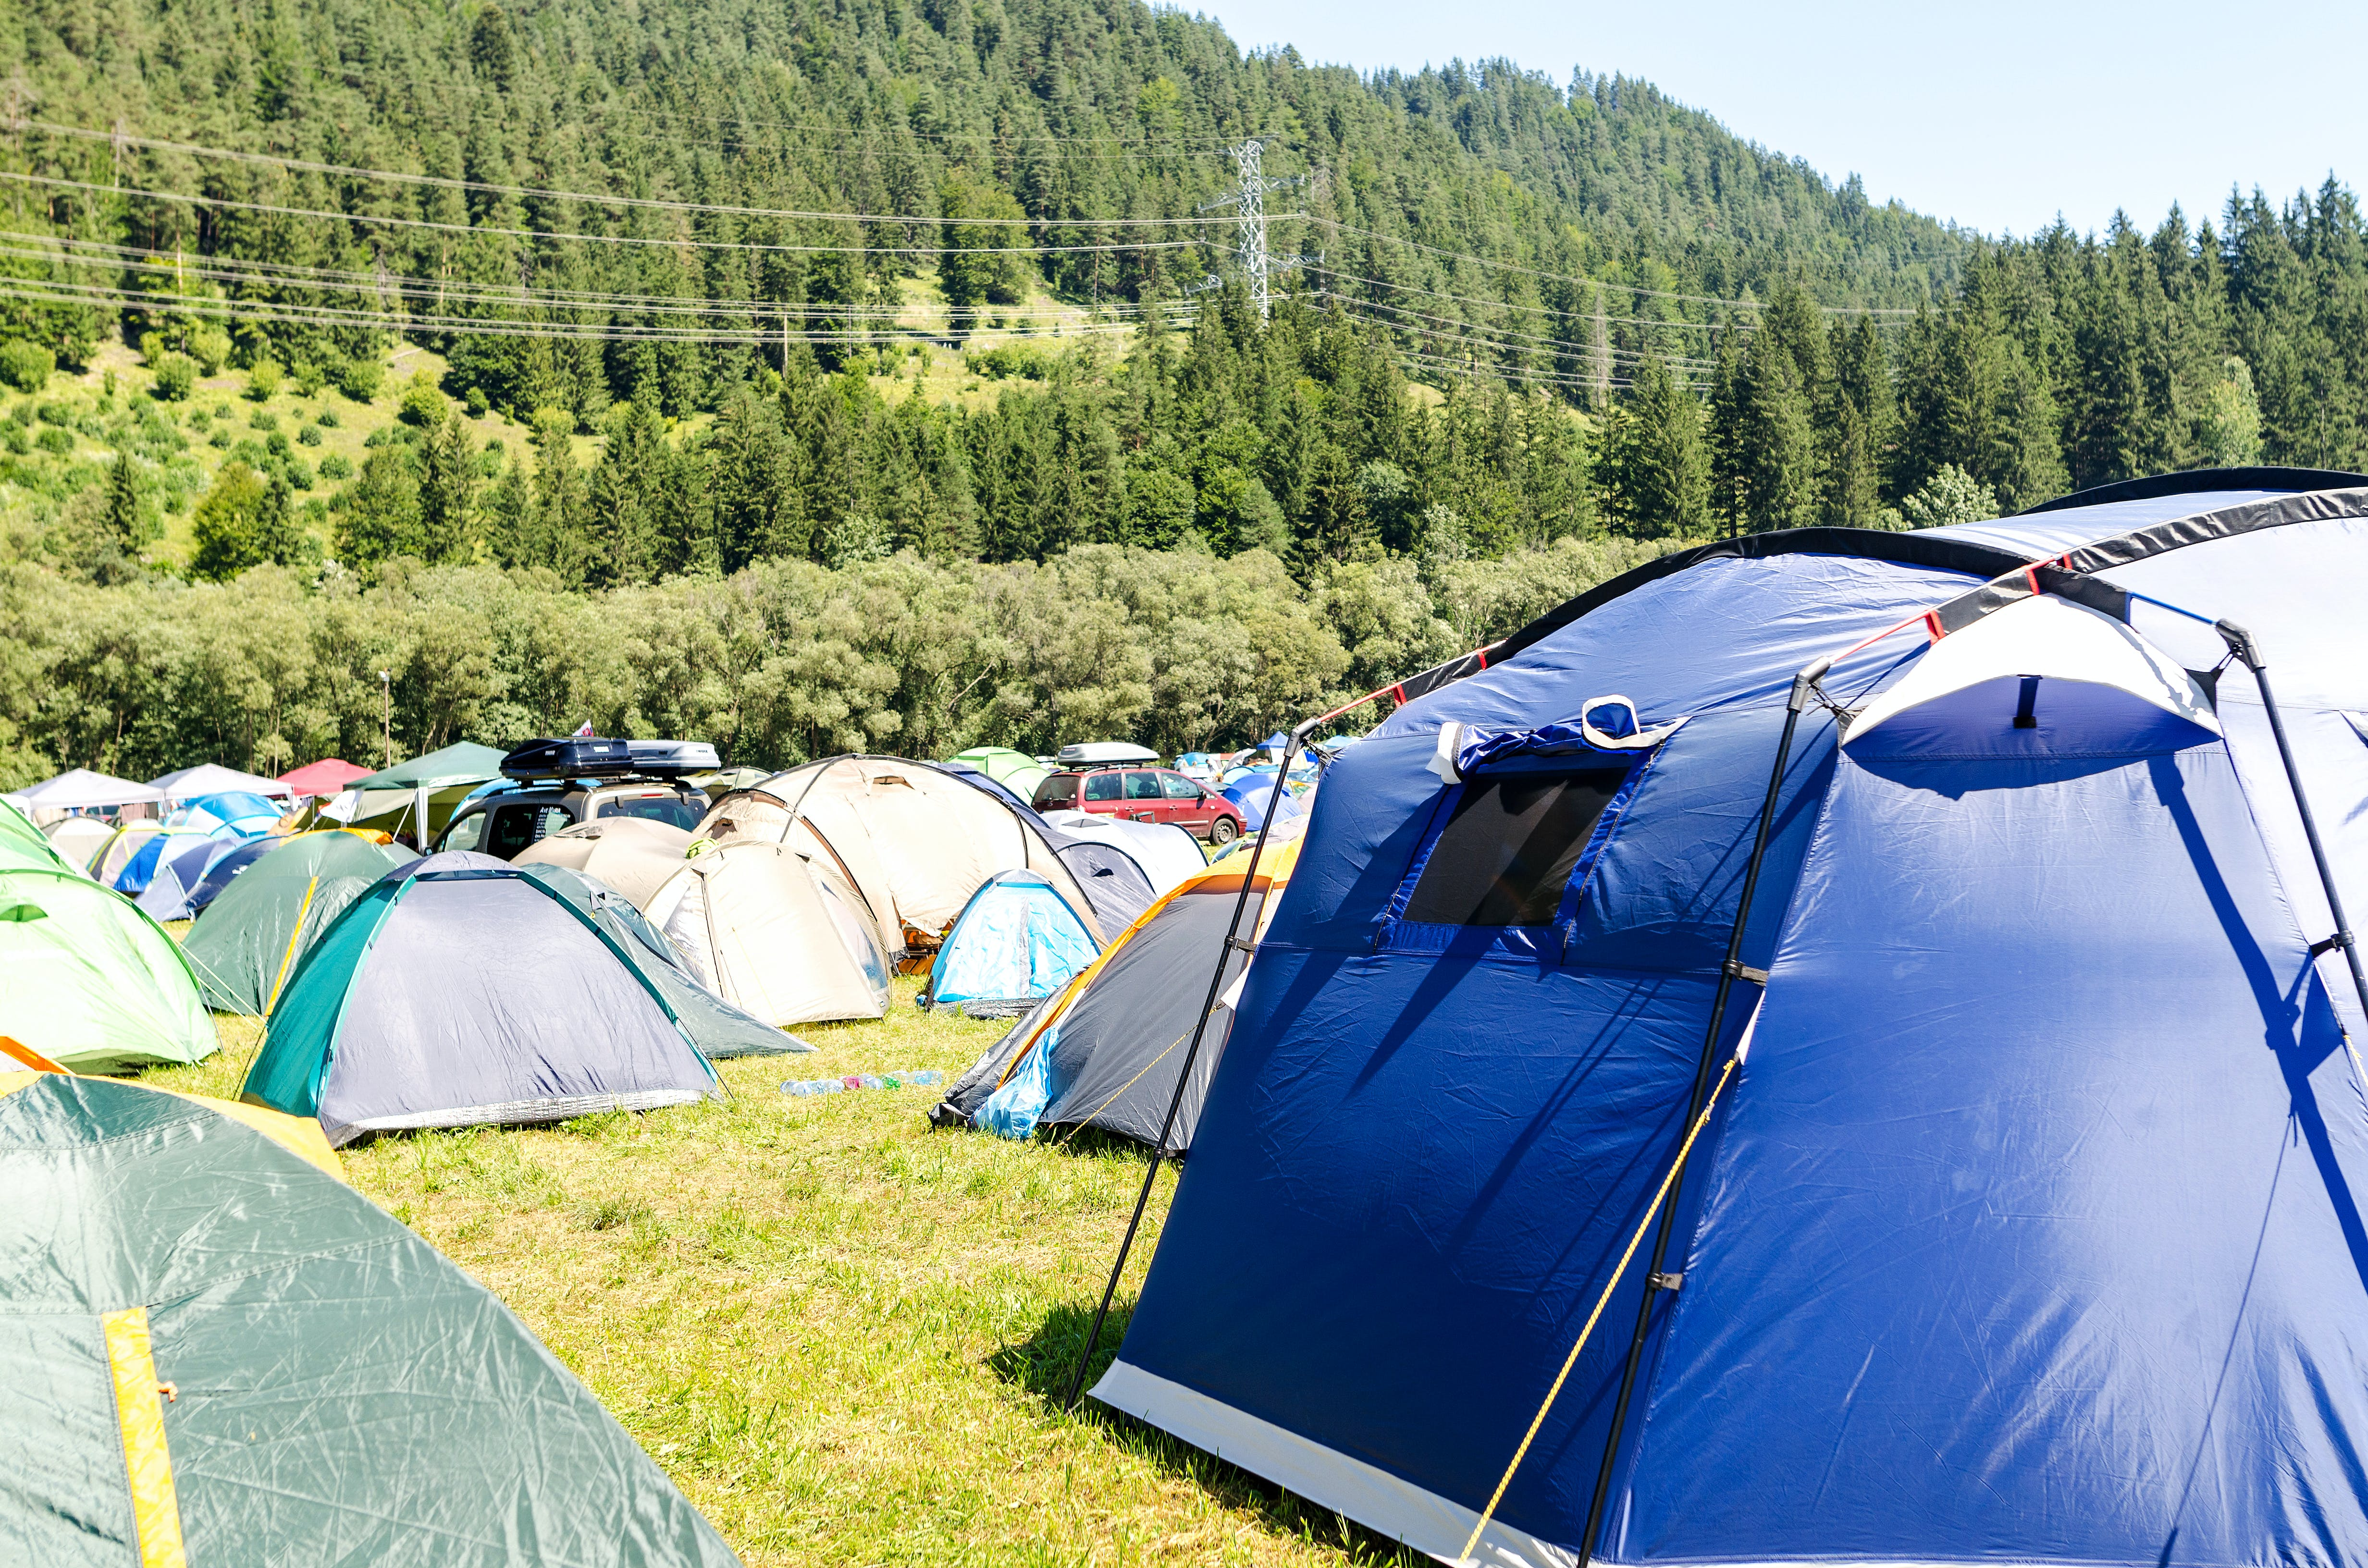 Tents Surrounded by Trees